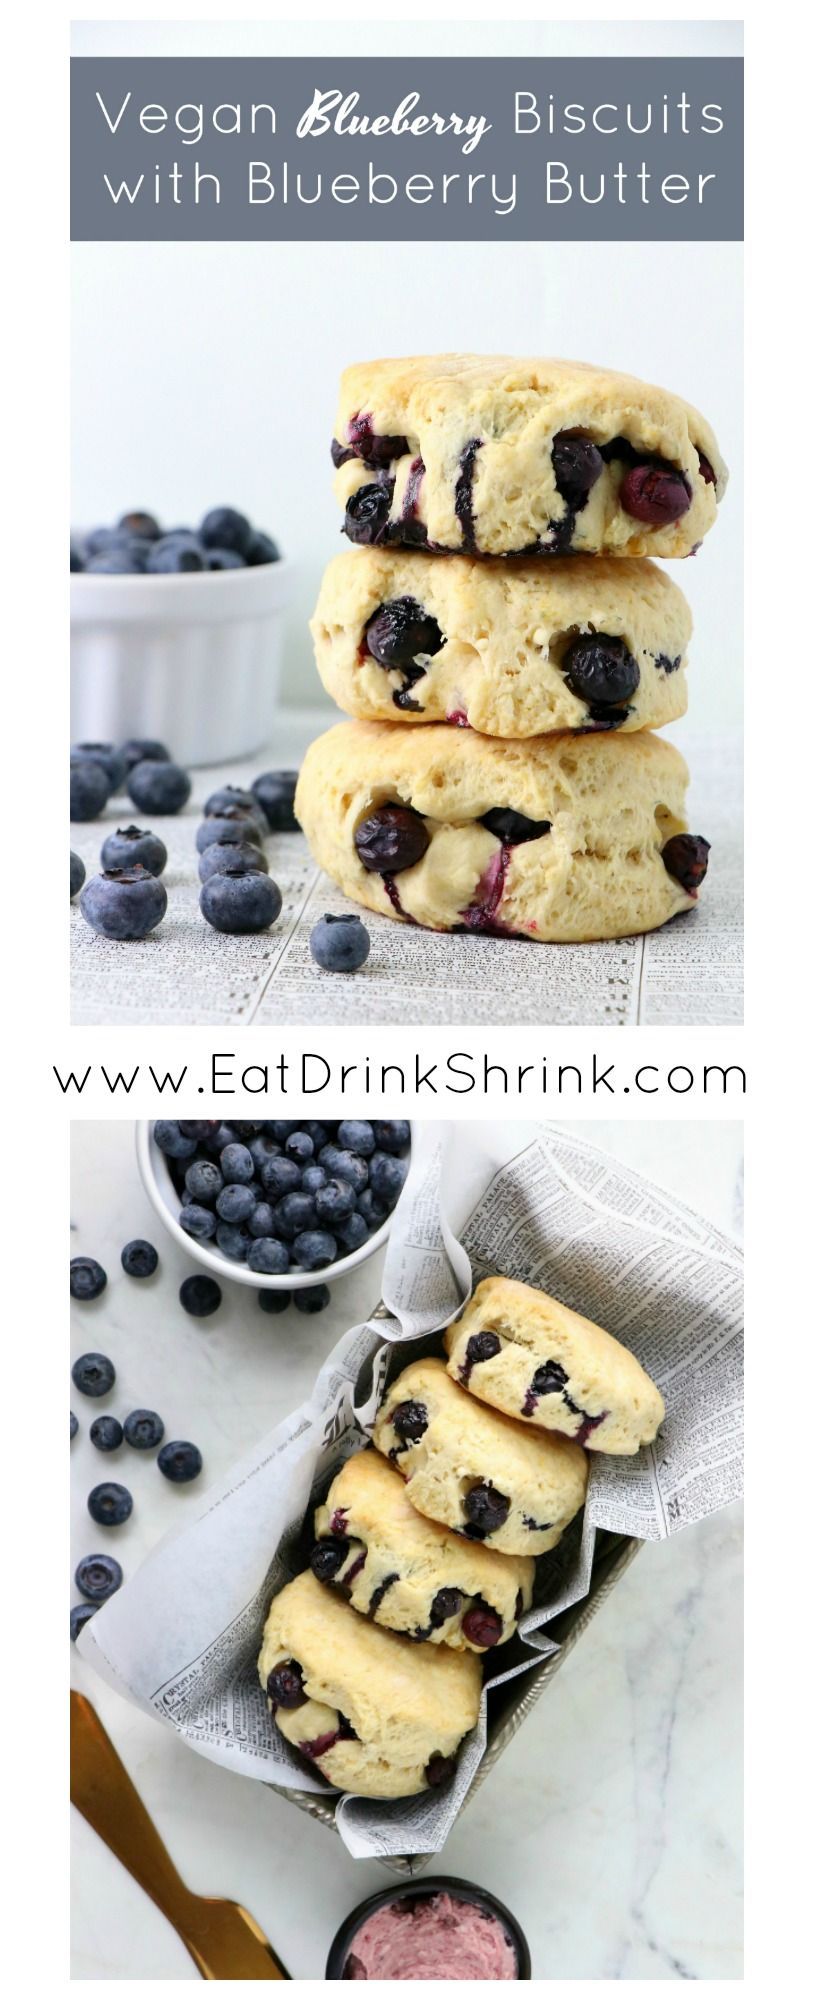 Vegan Blueberry Biscuits With Blueberry Butter Eat Drink Shrink Recipe In 2020 Vegan Blueberry Blueberry Biscuits Eat